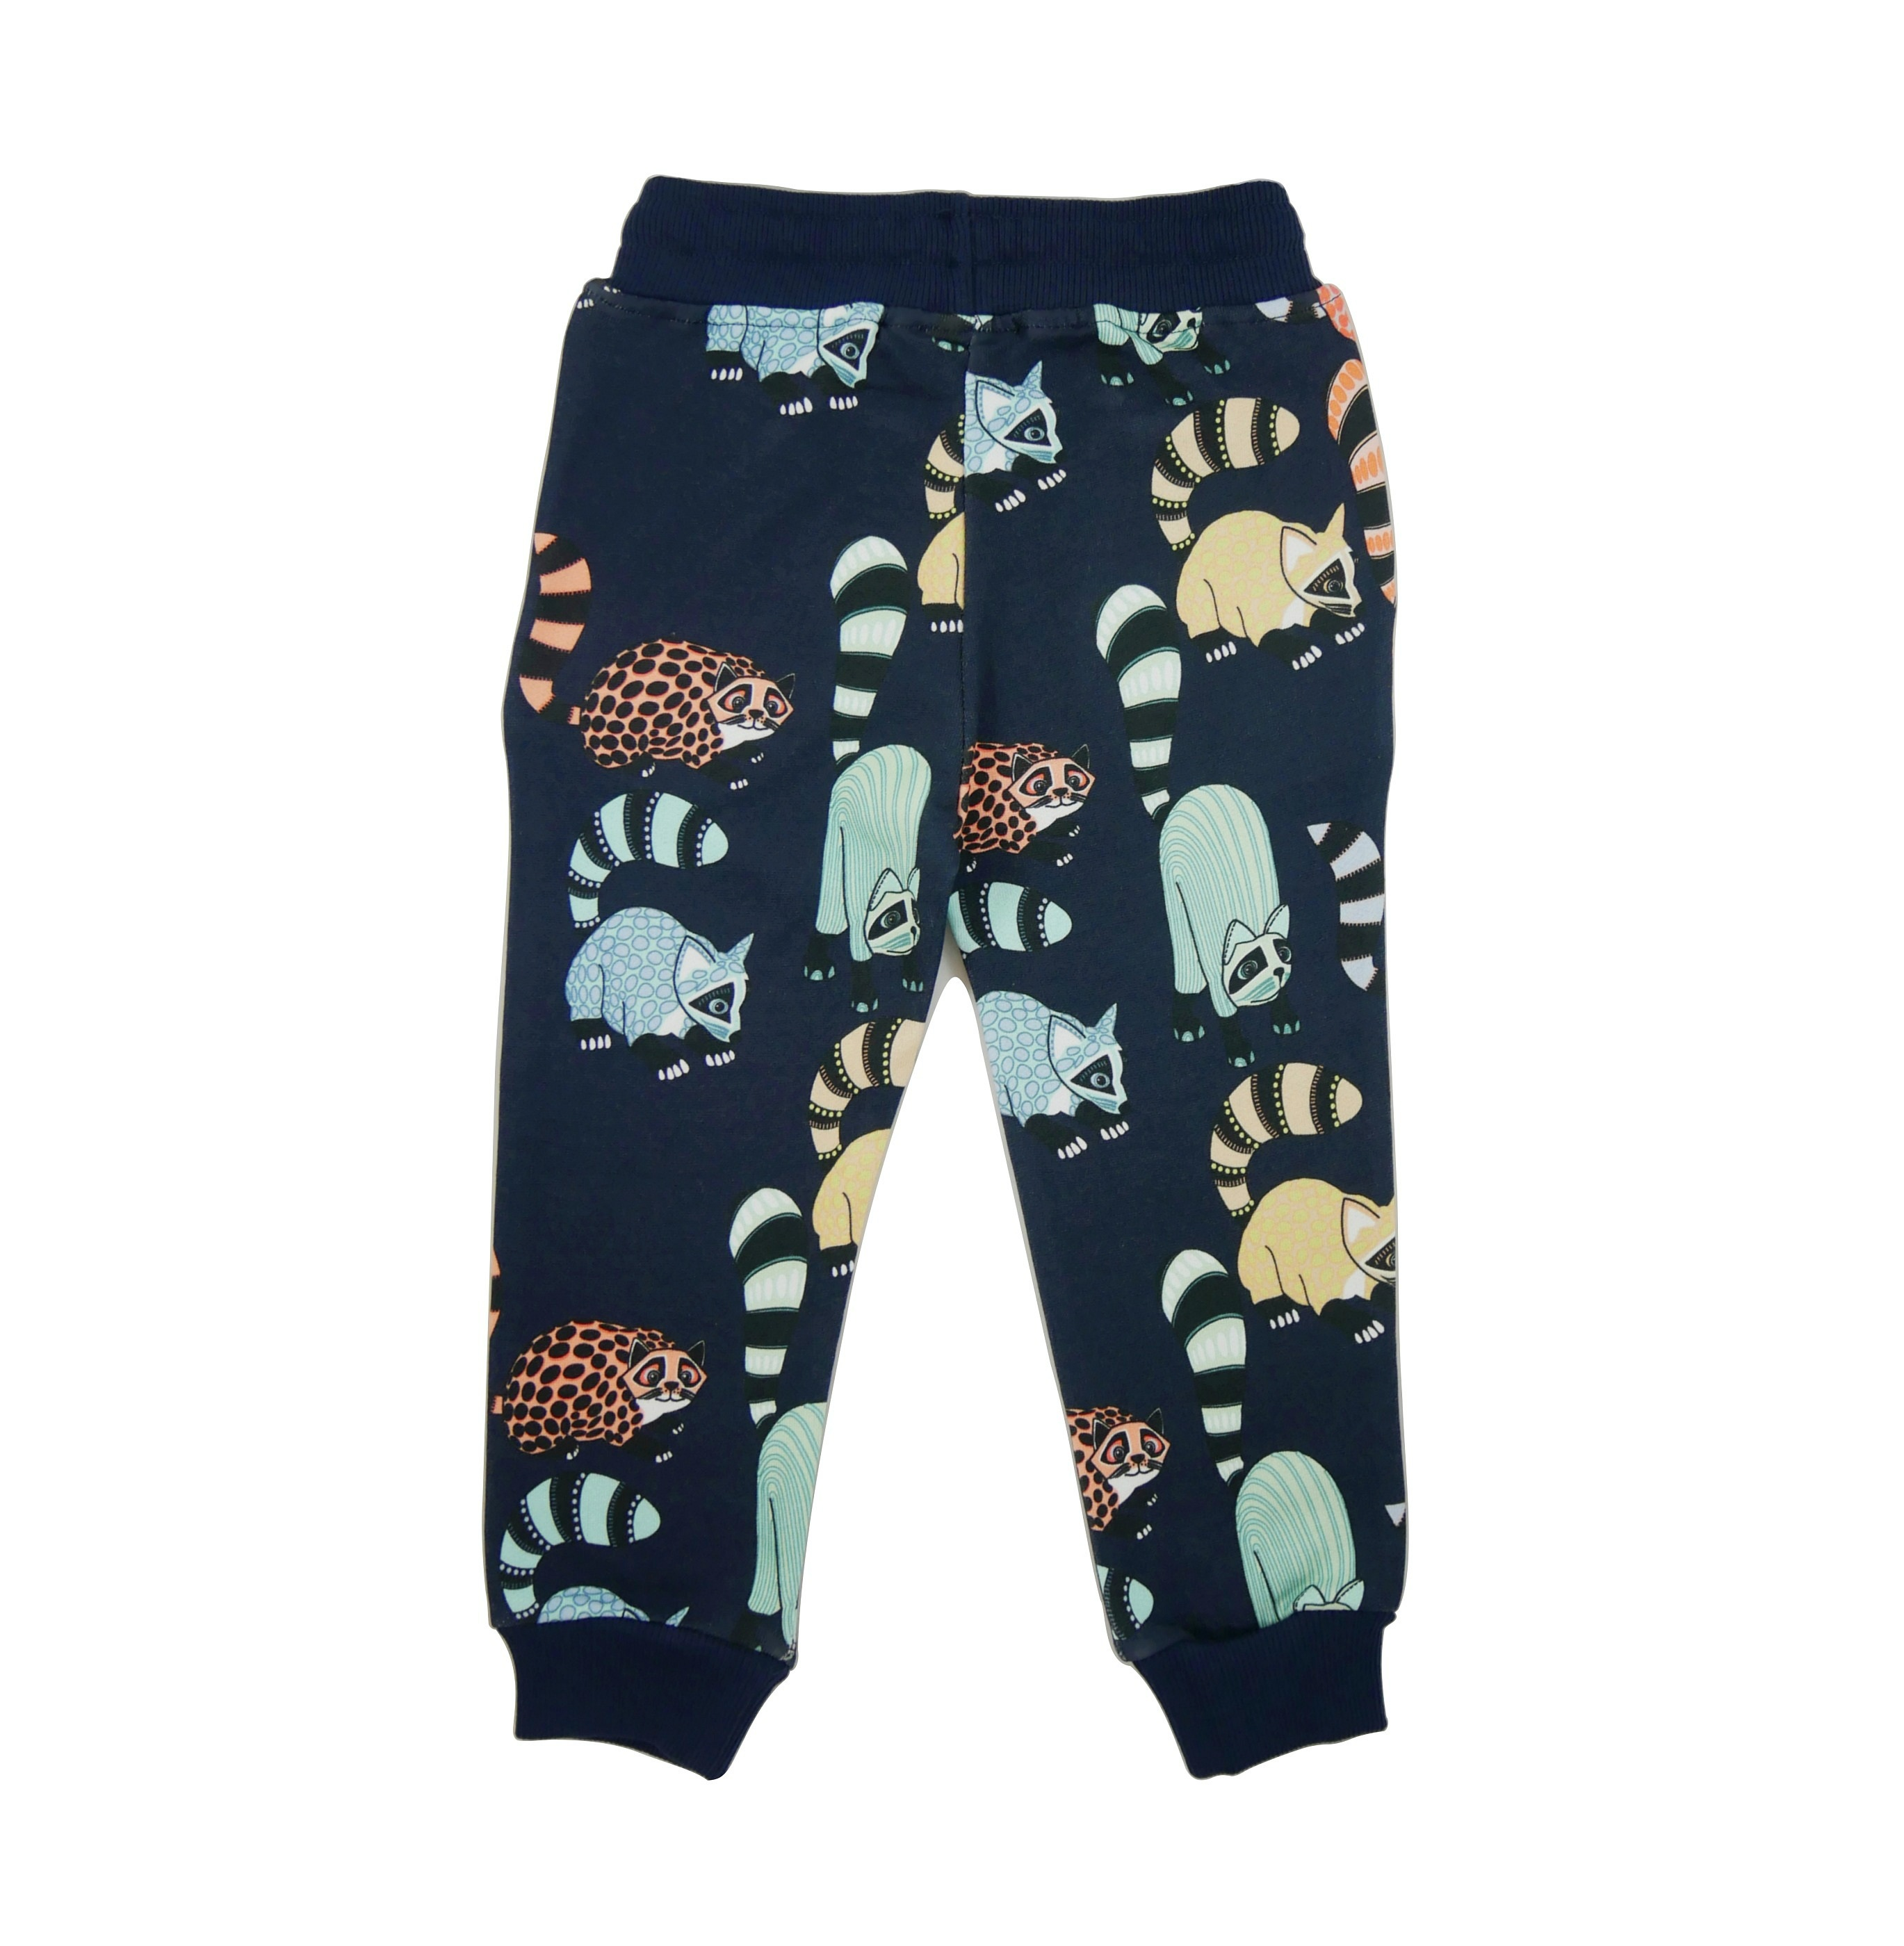 19SSPOA Sweatpants Oaxacan AOP back